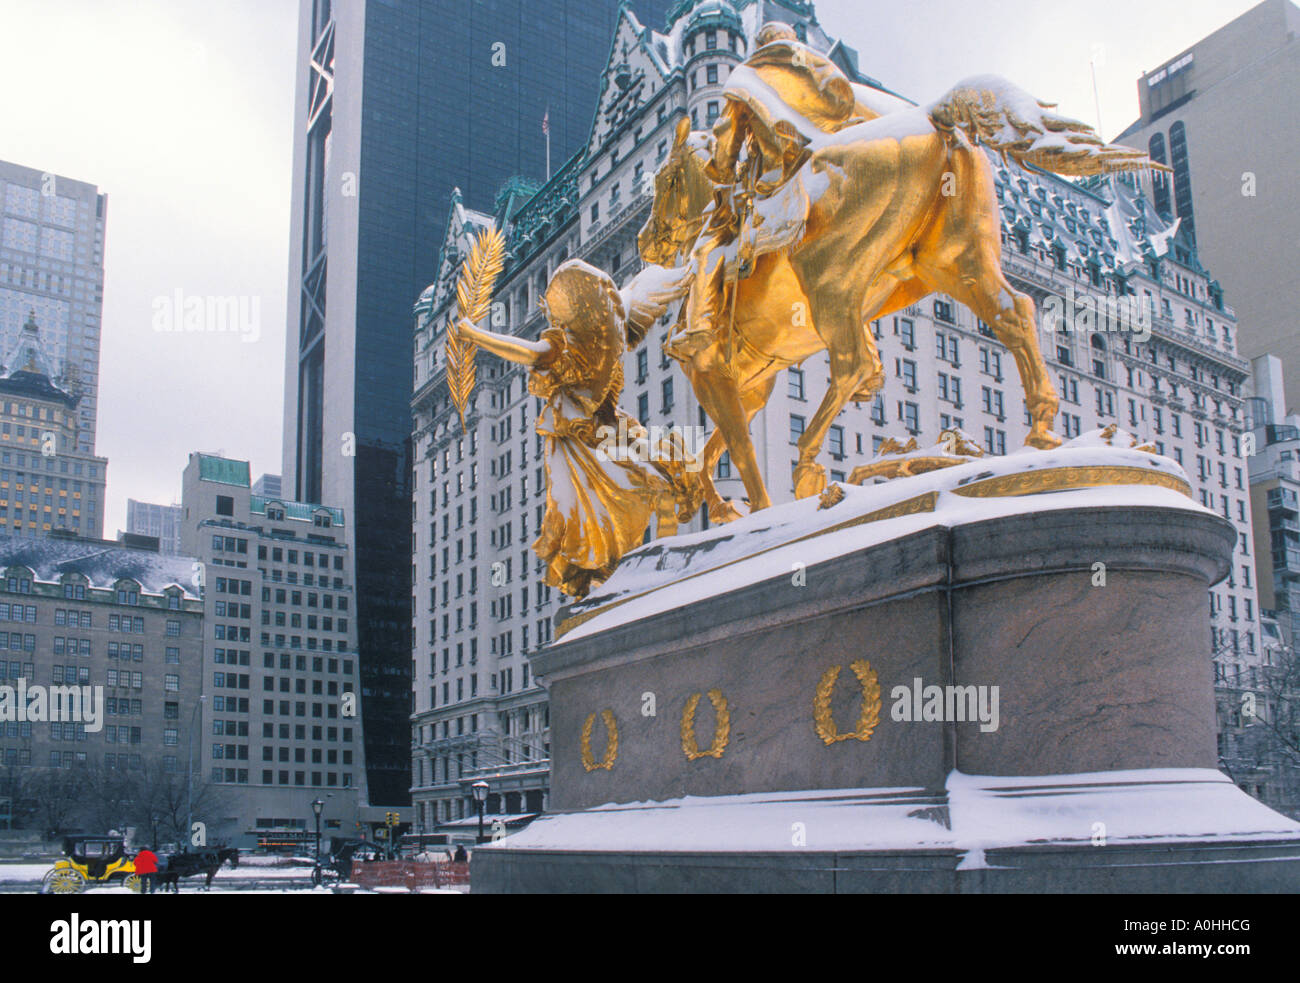 Plaza Hotel Grand Army Plaza in a Snowstorm New York City Midtown Manhattan Fifth Avenue NYC USA - Stock Image